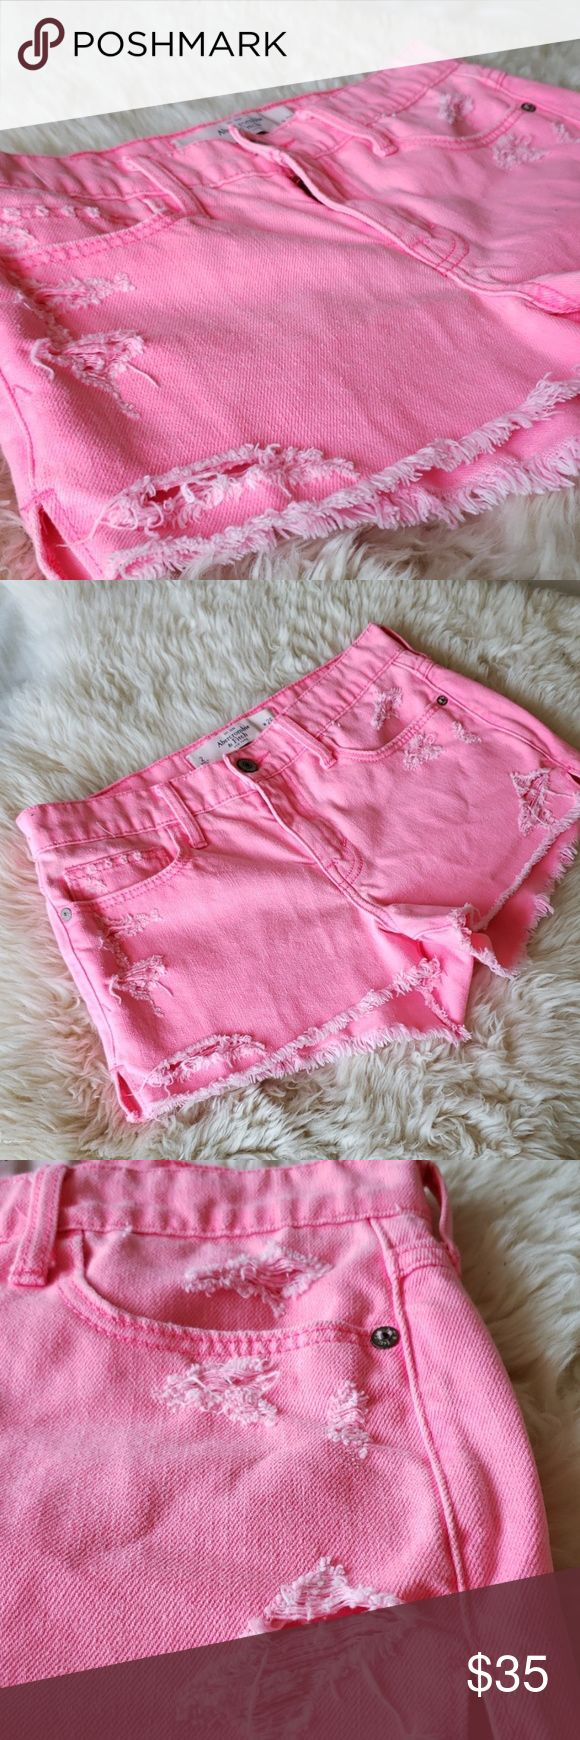 A & F Jeans-Shorts in Pink und Distressed-Optik Super süße Jeans-Shorts in Pink und …  – Woven Webb Boutique